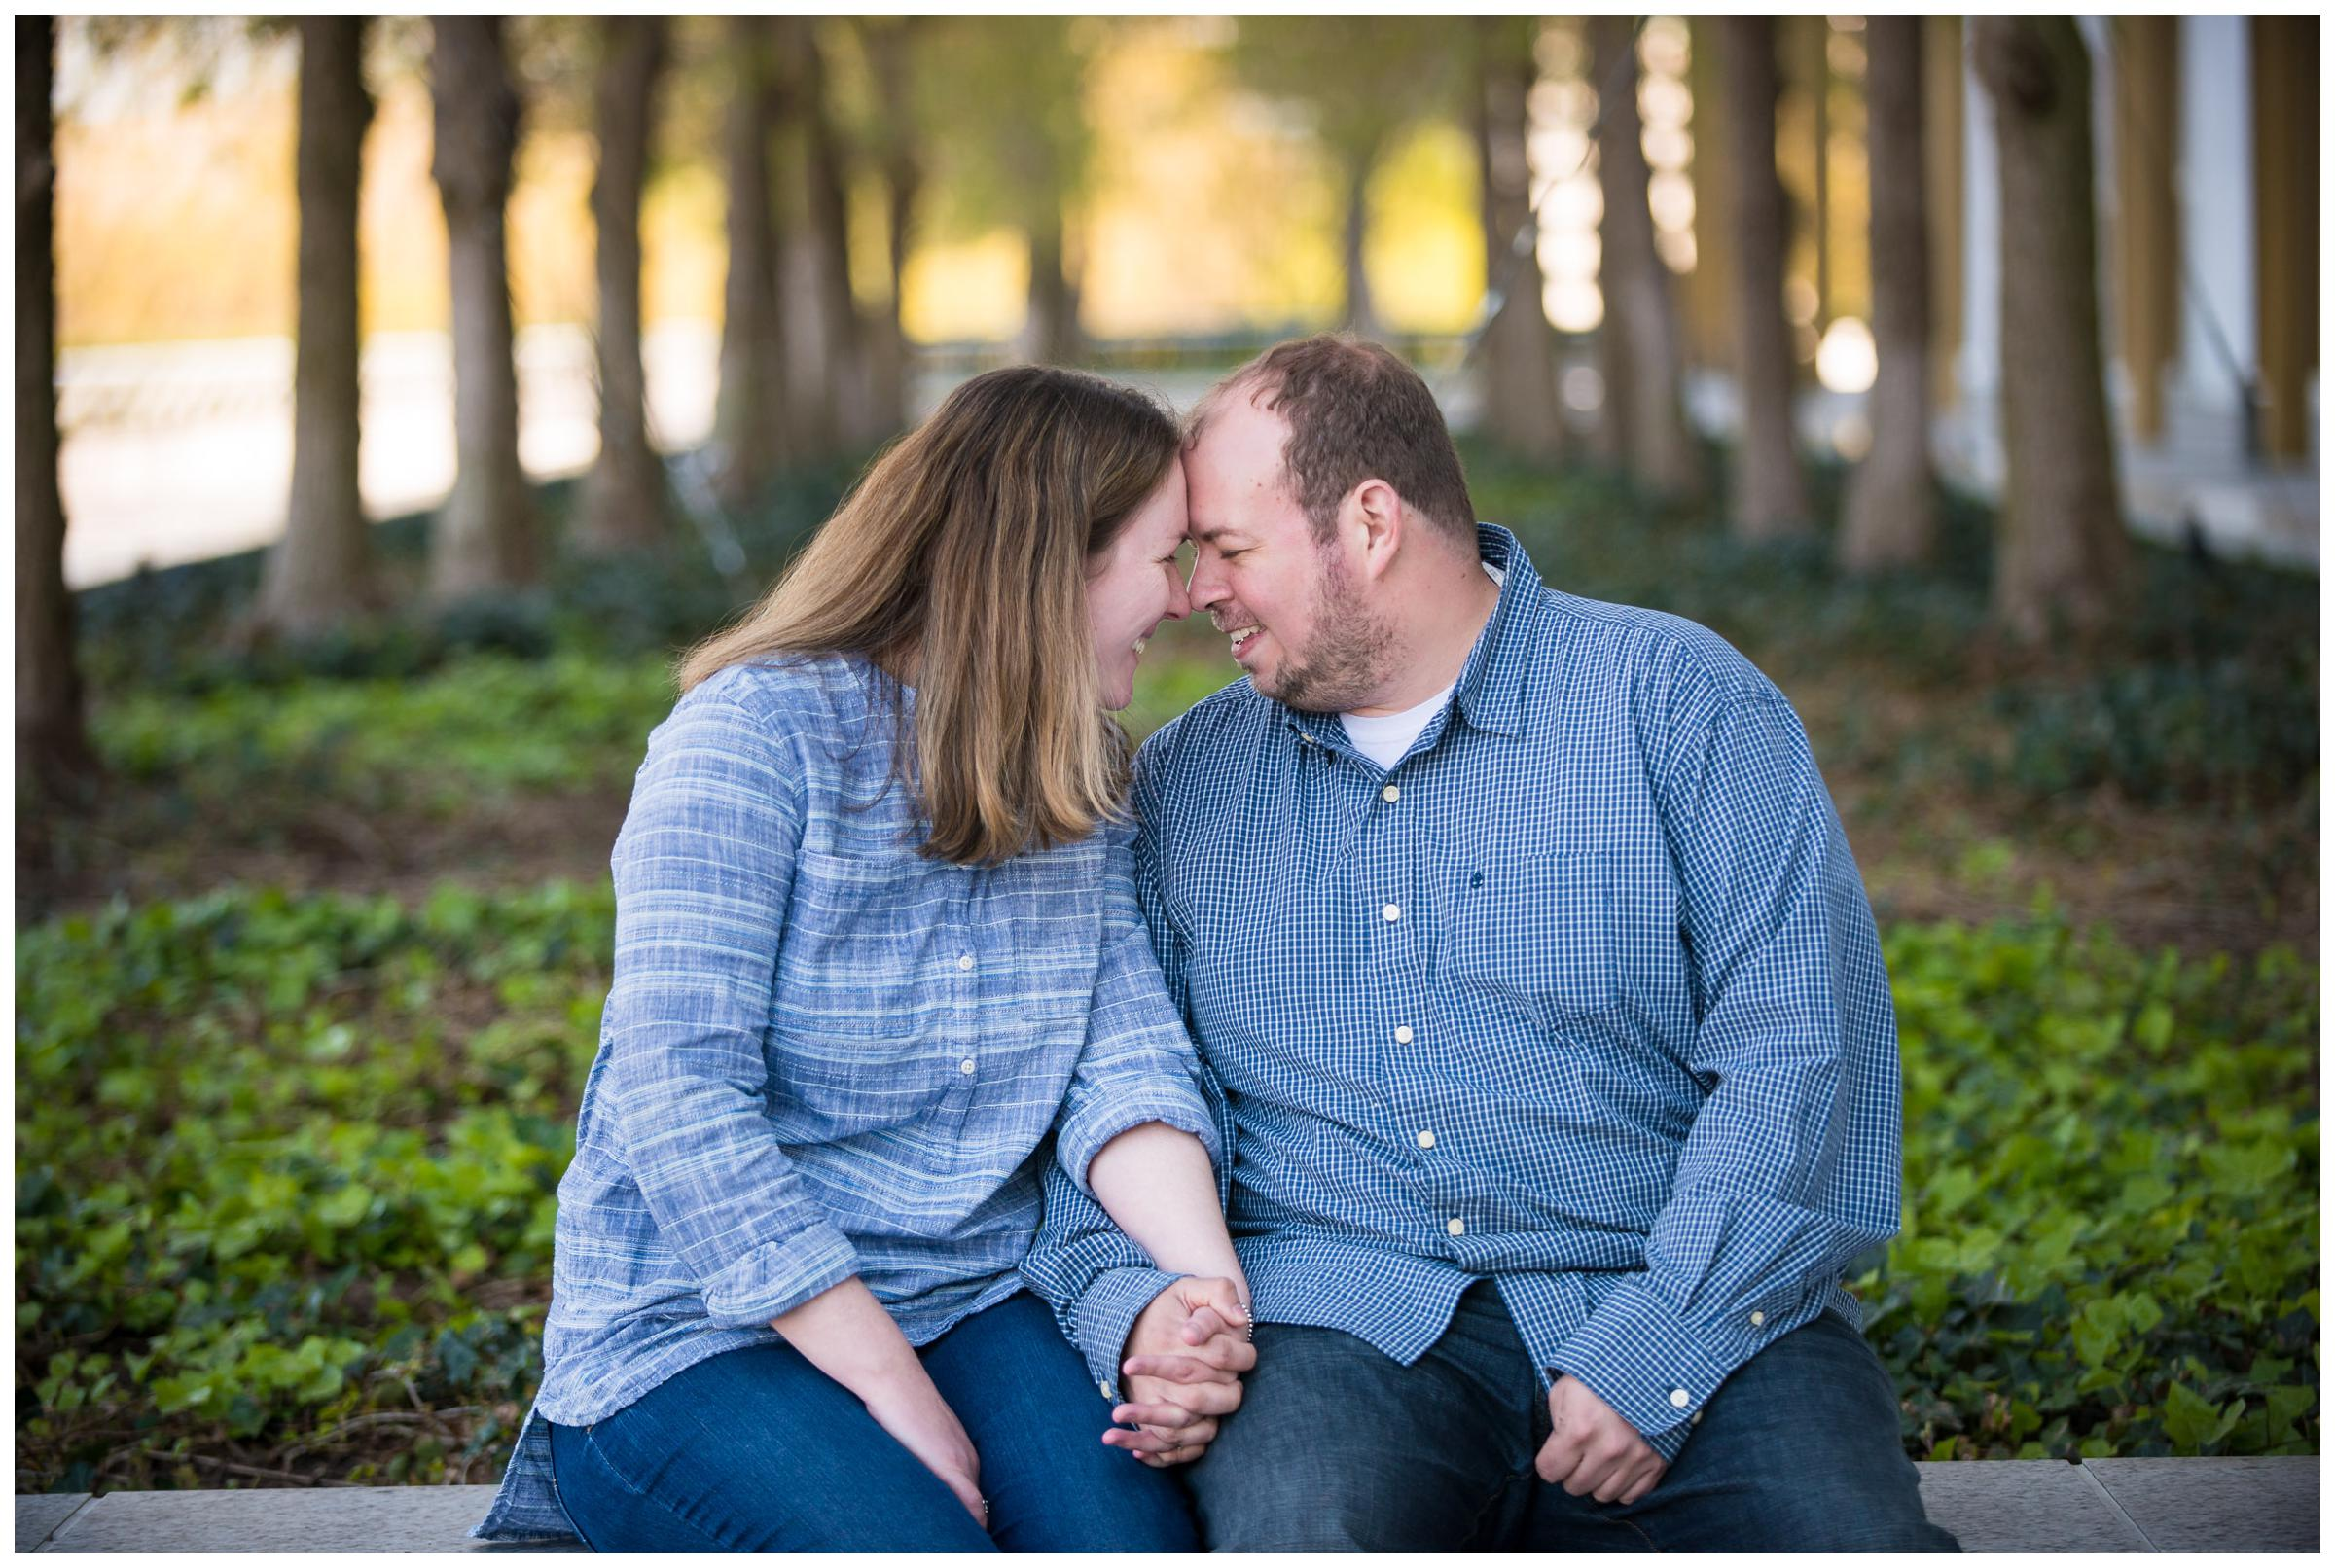 engagement photos at Kennedy Center in D.C.